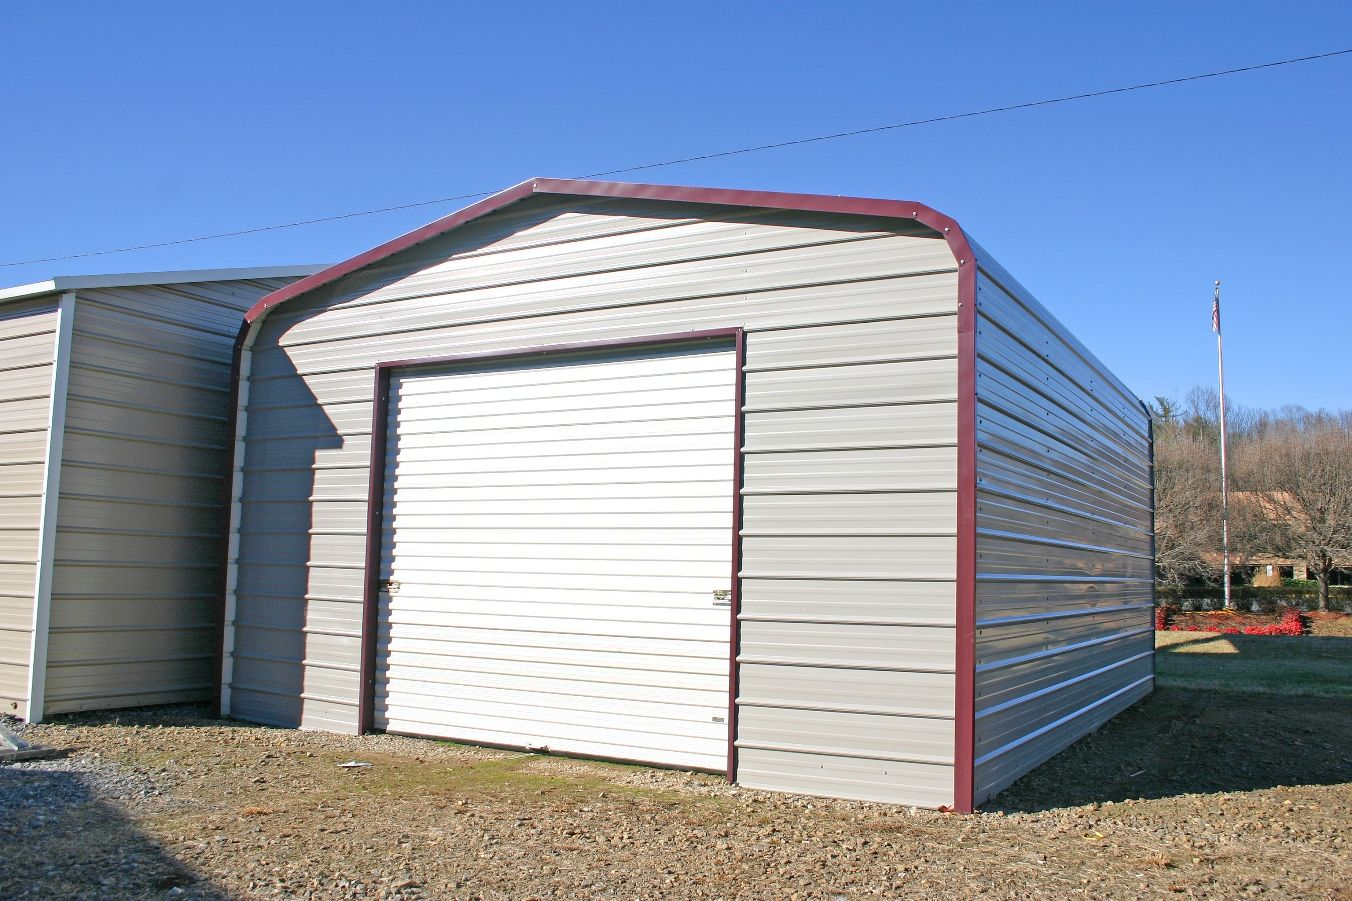 Car Port offer affordable metal carports, single, double